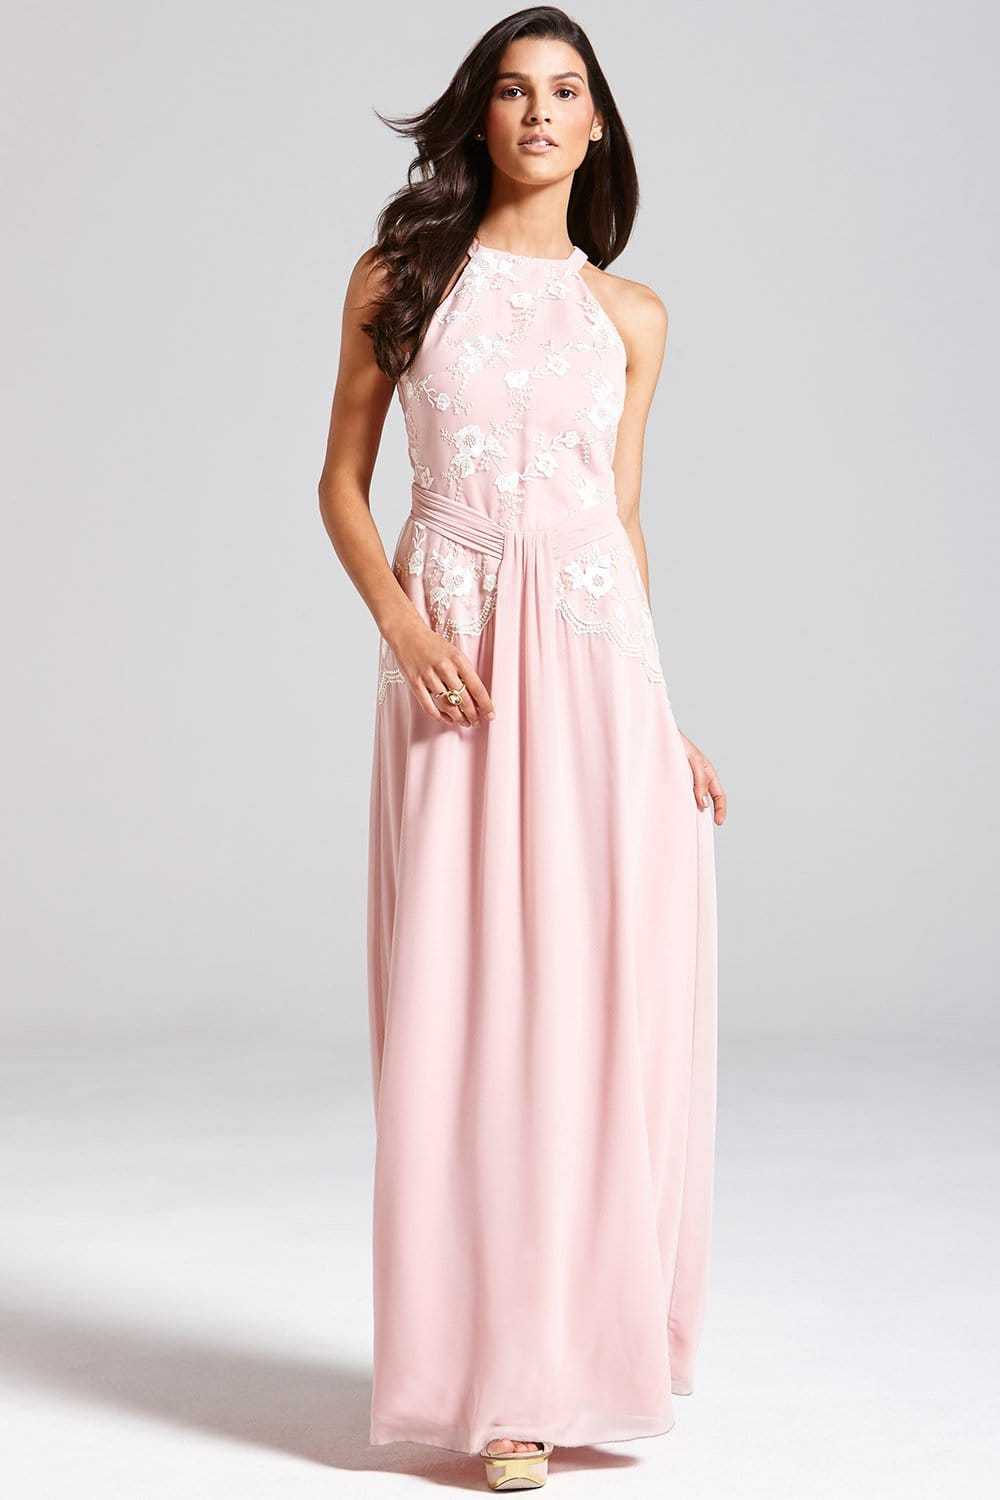 Rose Pink Floral Embroidered Maxi Dress From Little